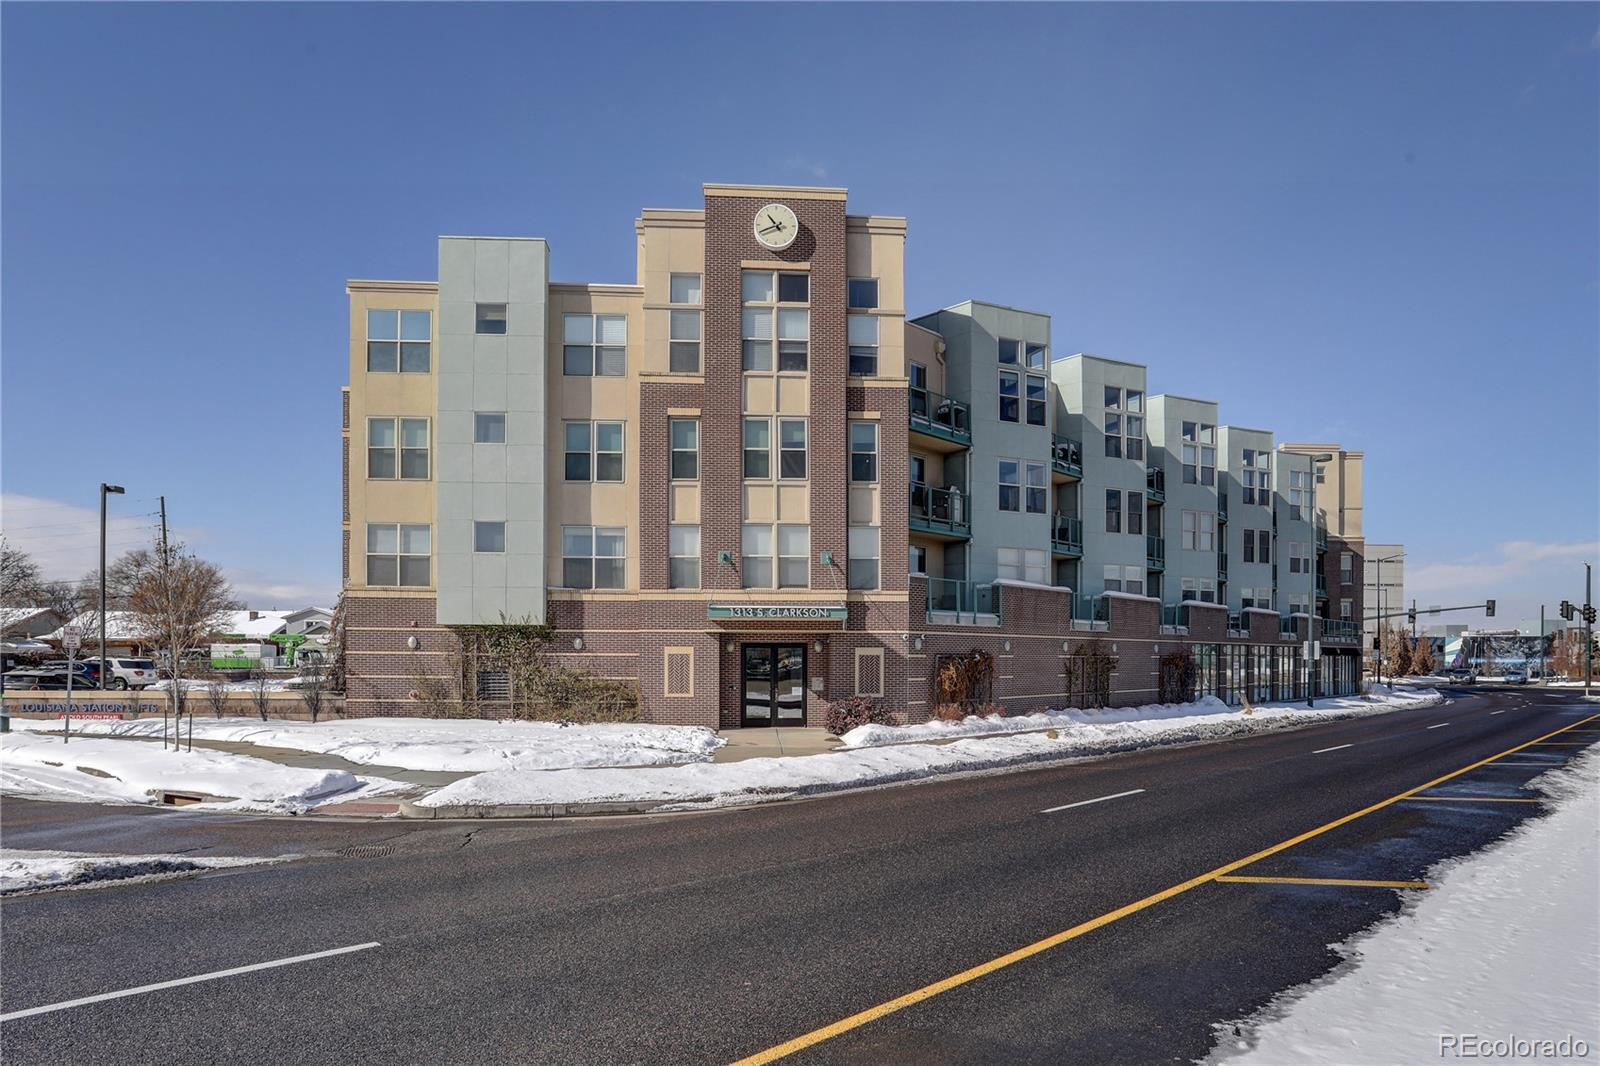 Location, Location , Location! Amazing Northeast facing END unit overlooking highway and light rail & RTD commuting around the metro area. Gorgeous Mountain & City views from the living area, the balcony! Updated and well maintained, the location doesn't get any better! Walking distance to Wash Park, Platte Park, South Pearl Street, Sushi Den, Park Burger, Izakaya Den, Uno Mas, Sweet Cow, The Village Cork, Stella's, Yardbird, Whole Foods and South Broadway! The light-rail & RTD is across the street for easy access to downtown and the Tech Center! This unit comes with RARE 2 parking spaces one outside and one in the garage. Washer & dryer in the unit and a storage unit 22! Come check it out, it's sure to go quickly!